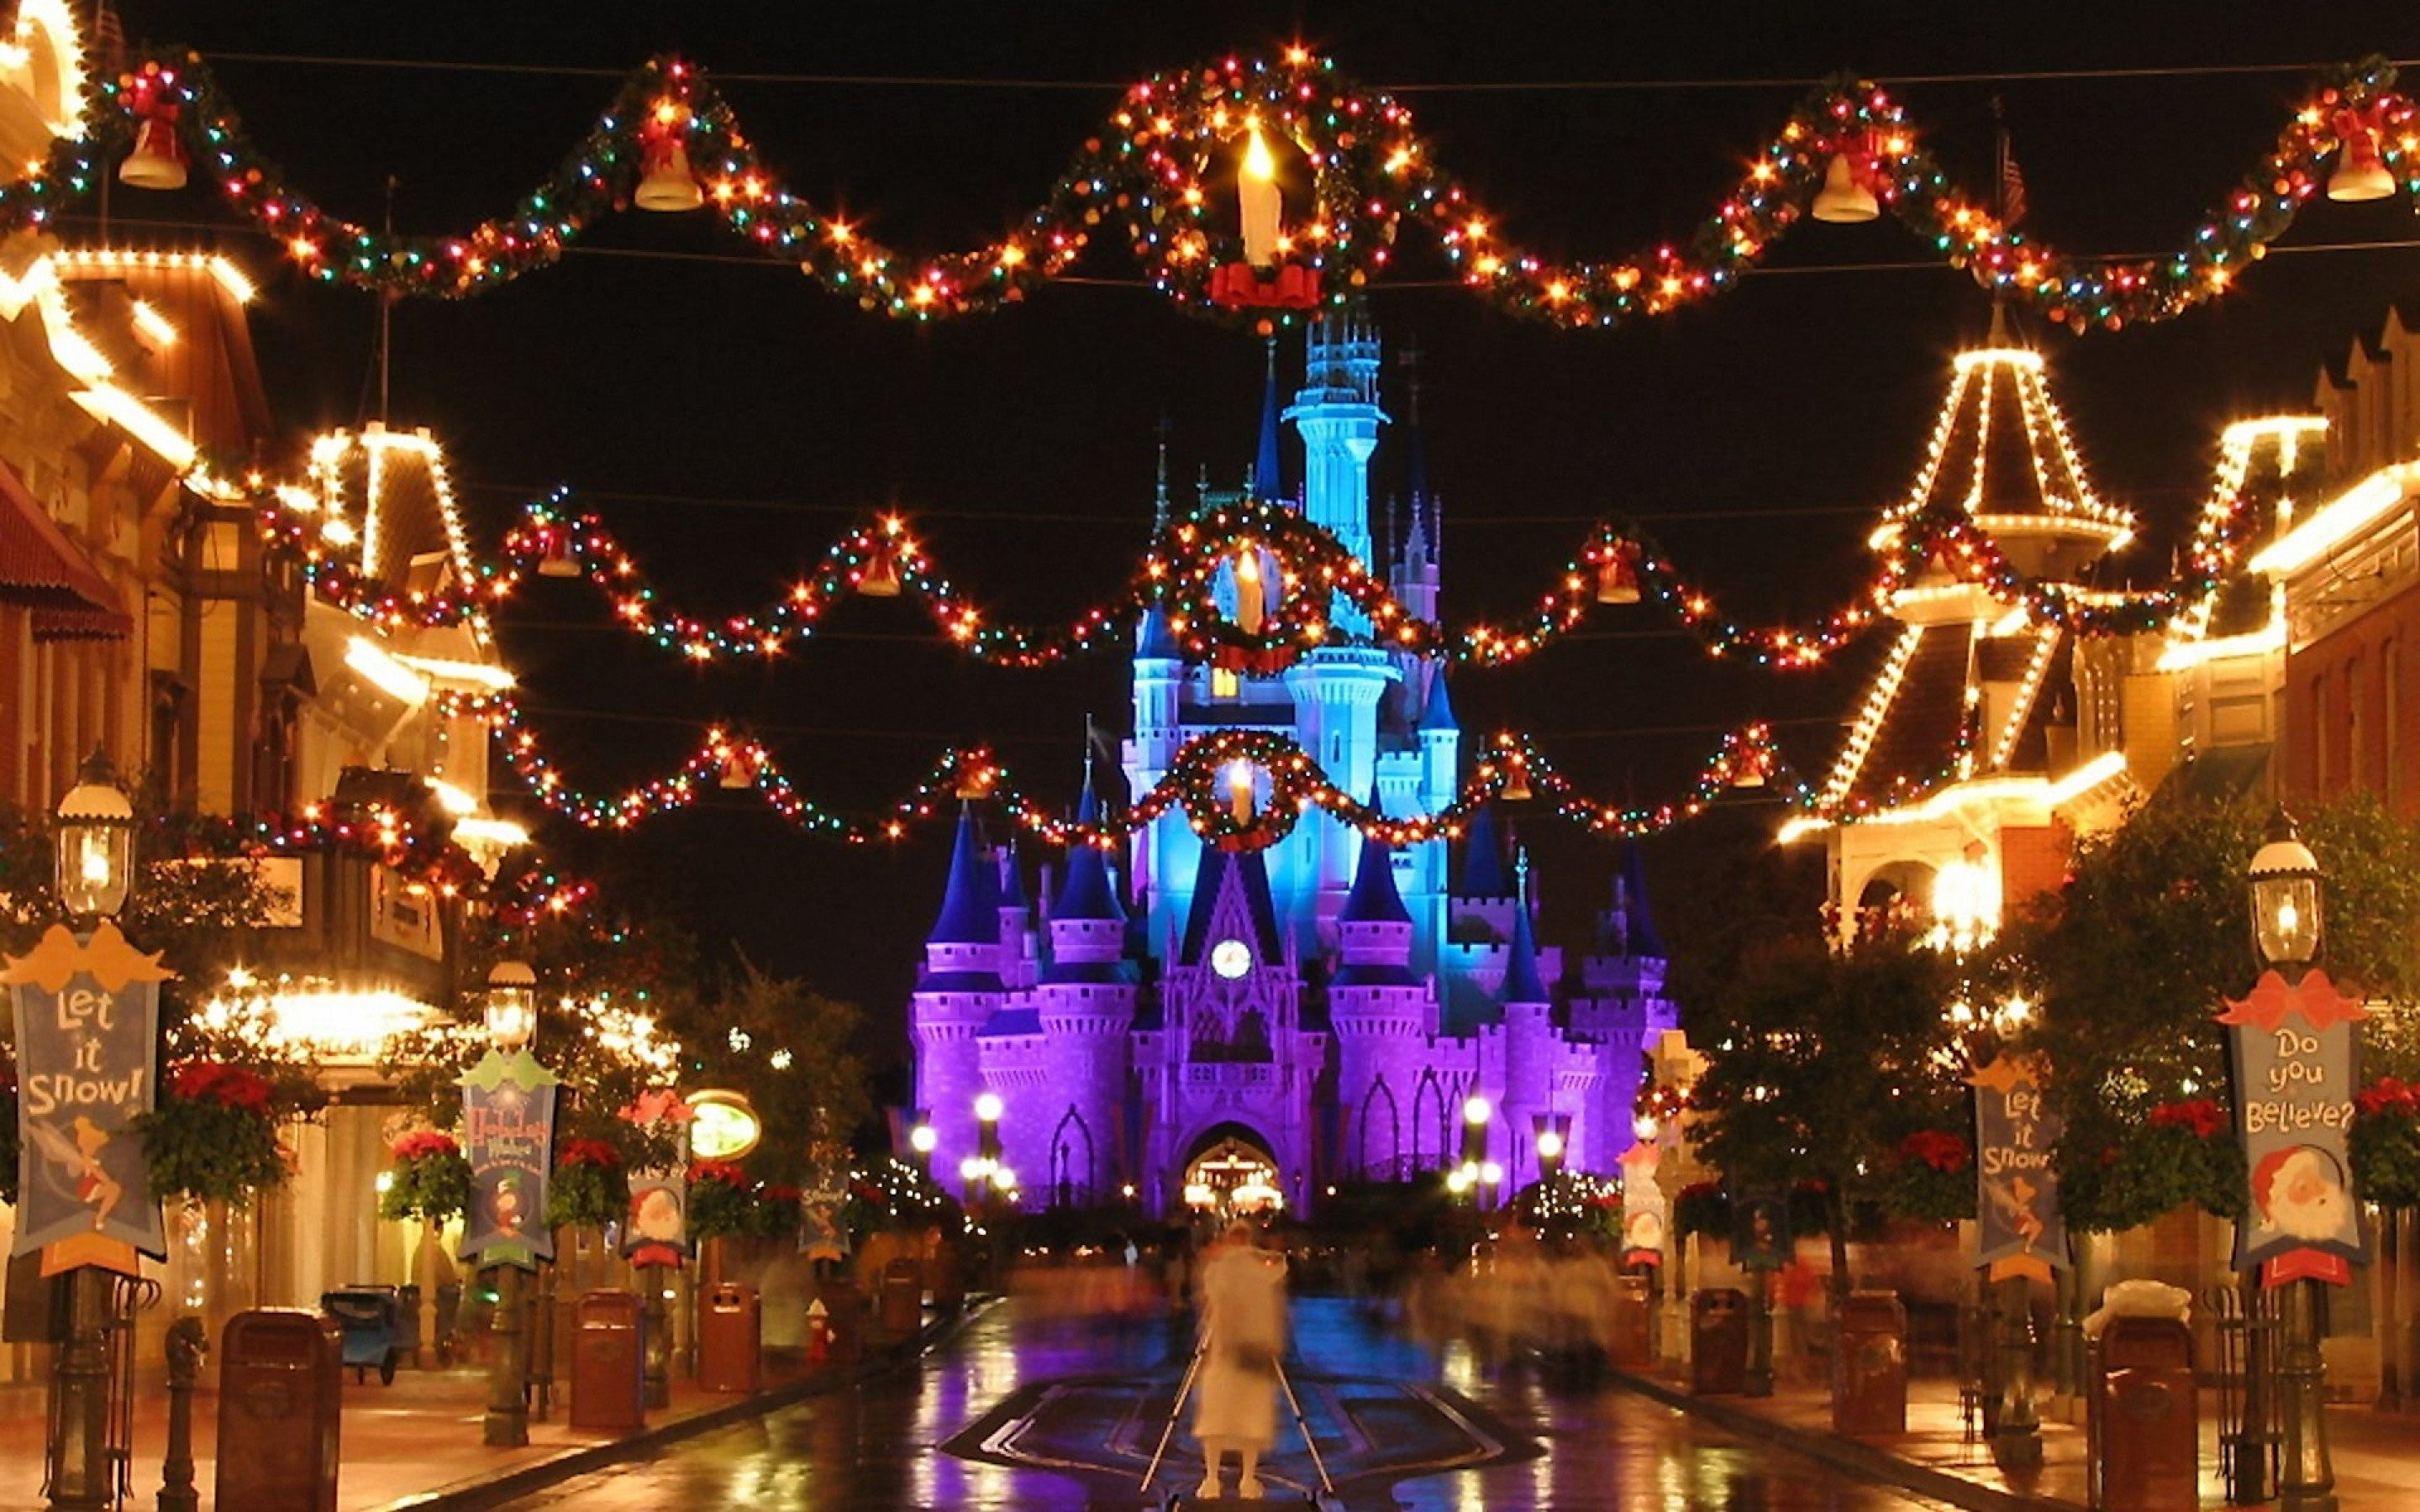 Disney Christmas Wallpaper Iphone Posted By Zoey Cunningham